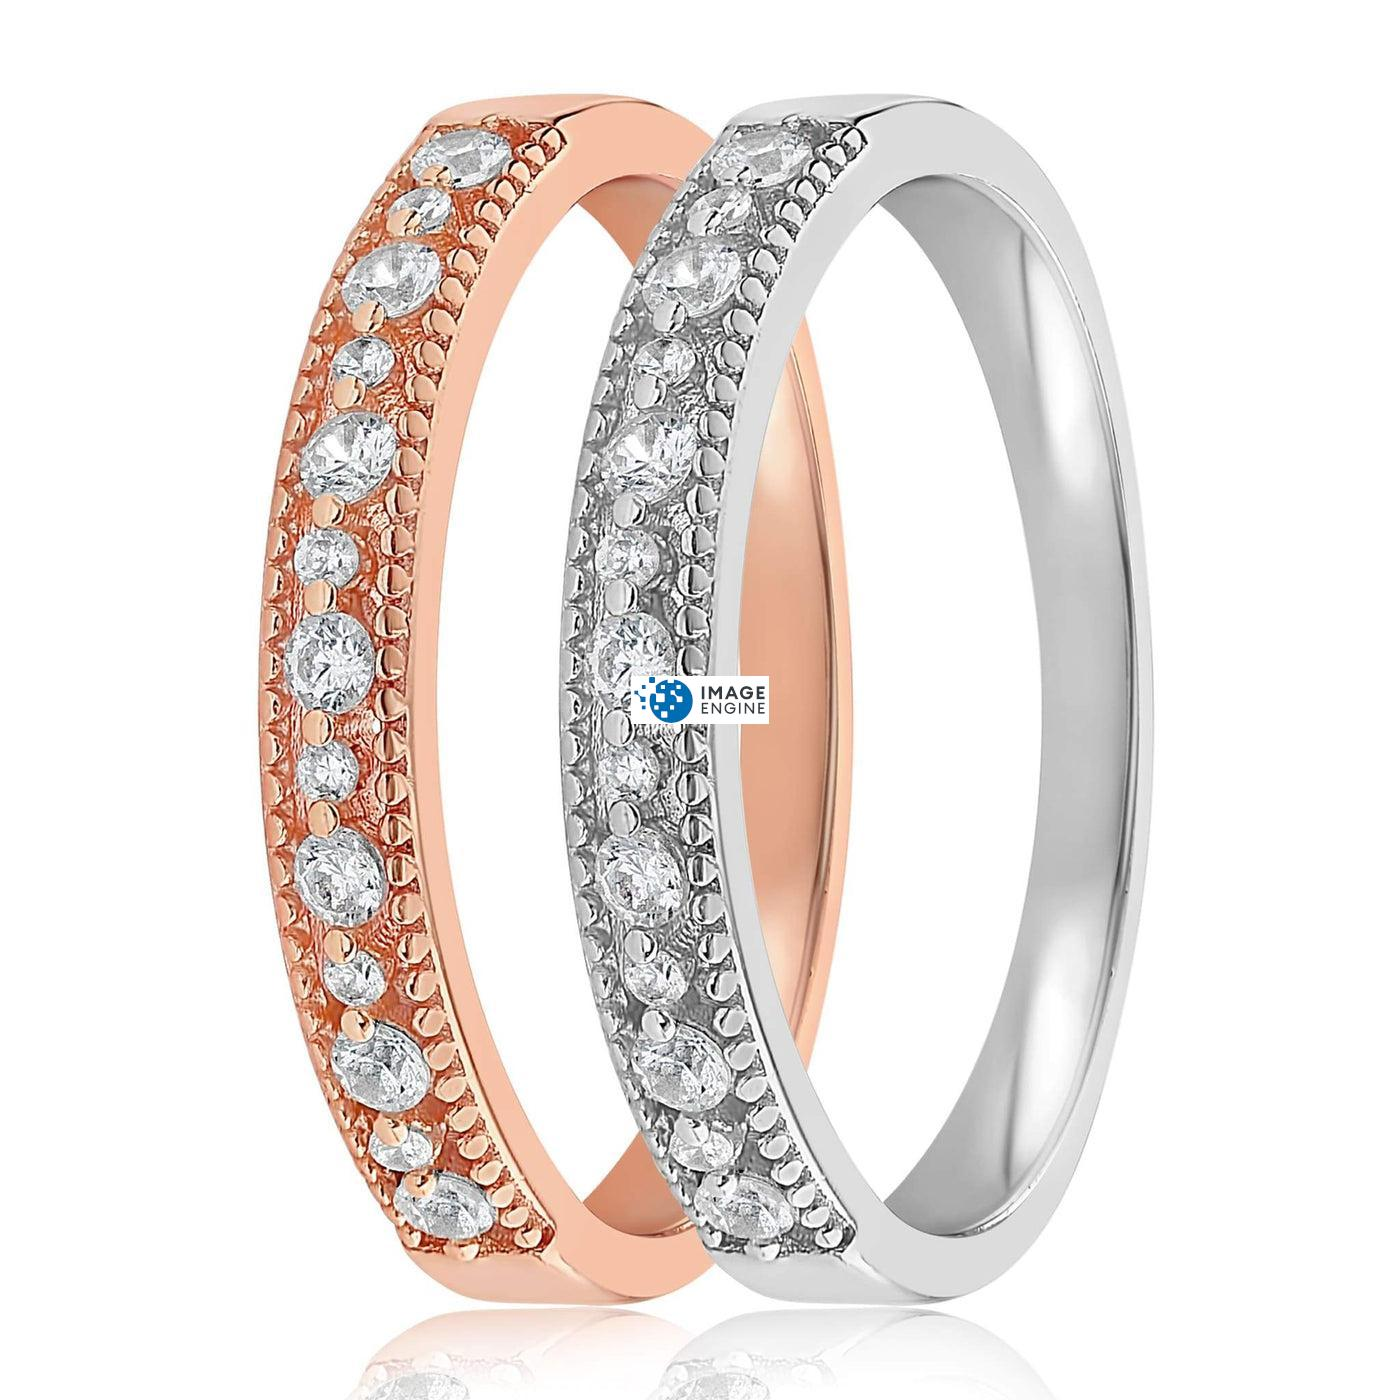 Joyce Layered Stack Ring - Side by Side - 925 Sterling Silver and 18K Rose Gold Vermeil